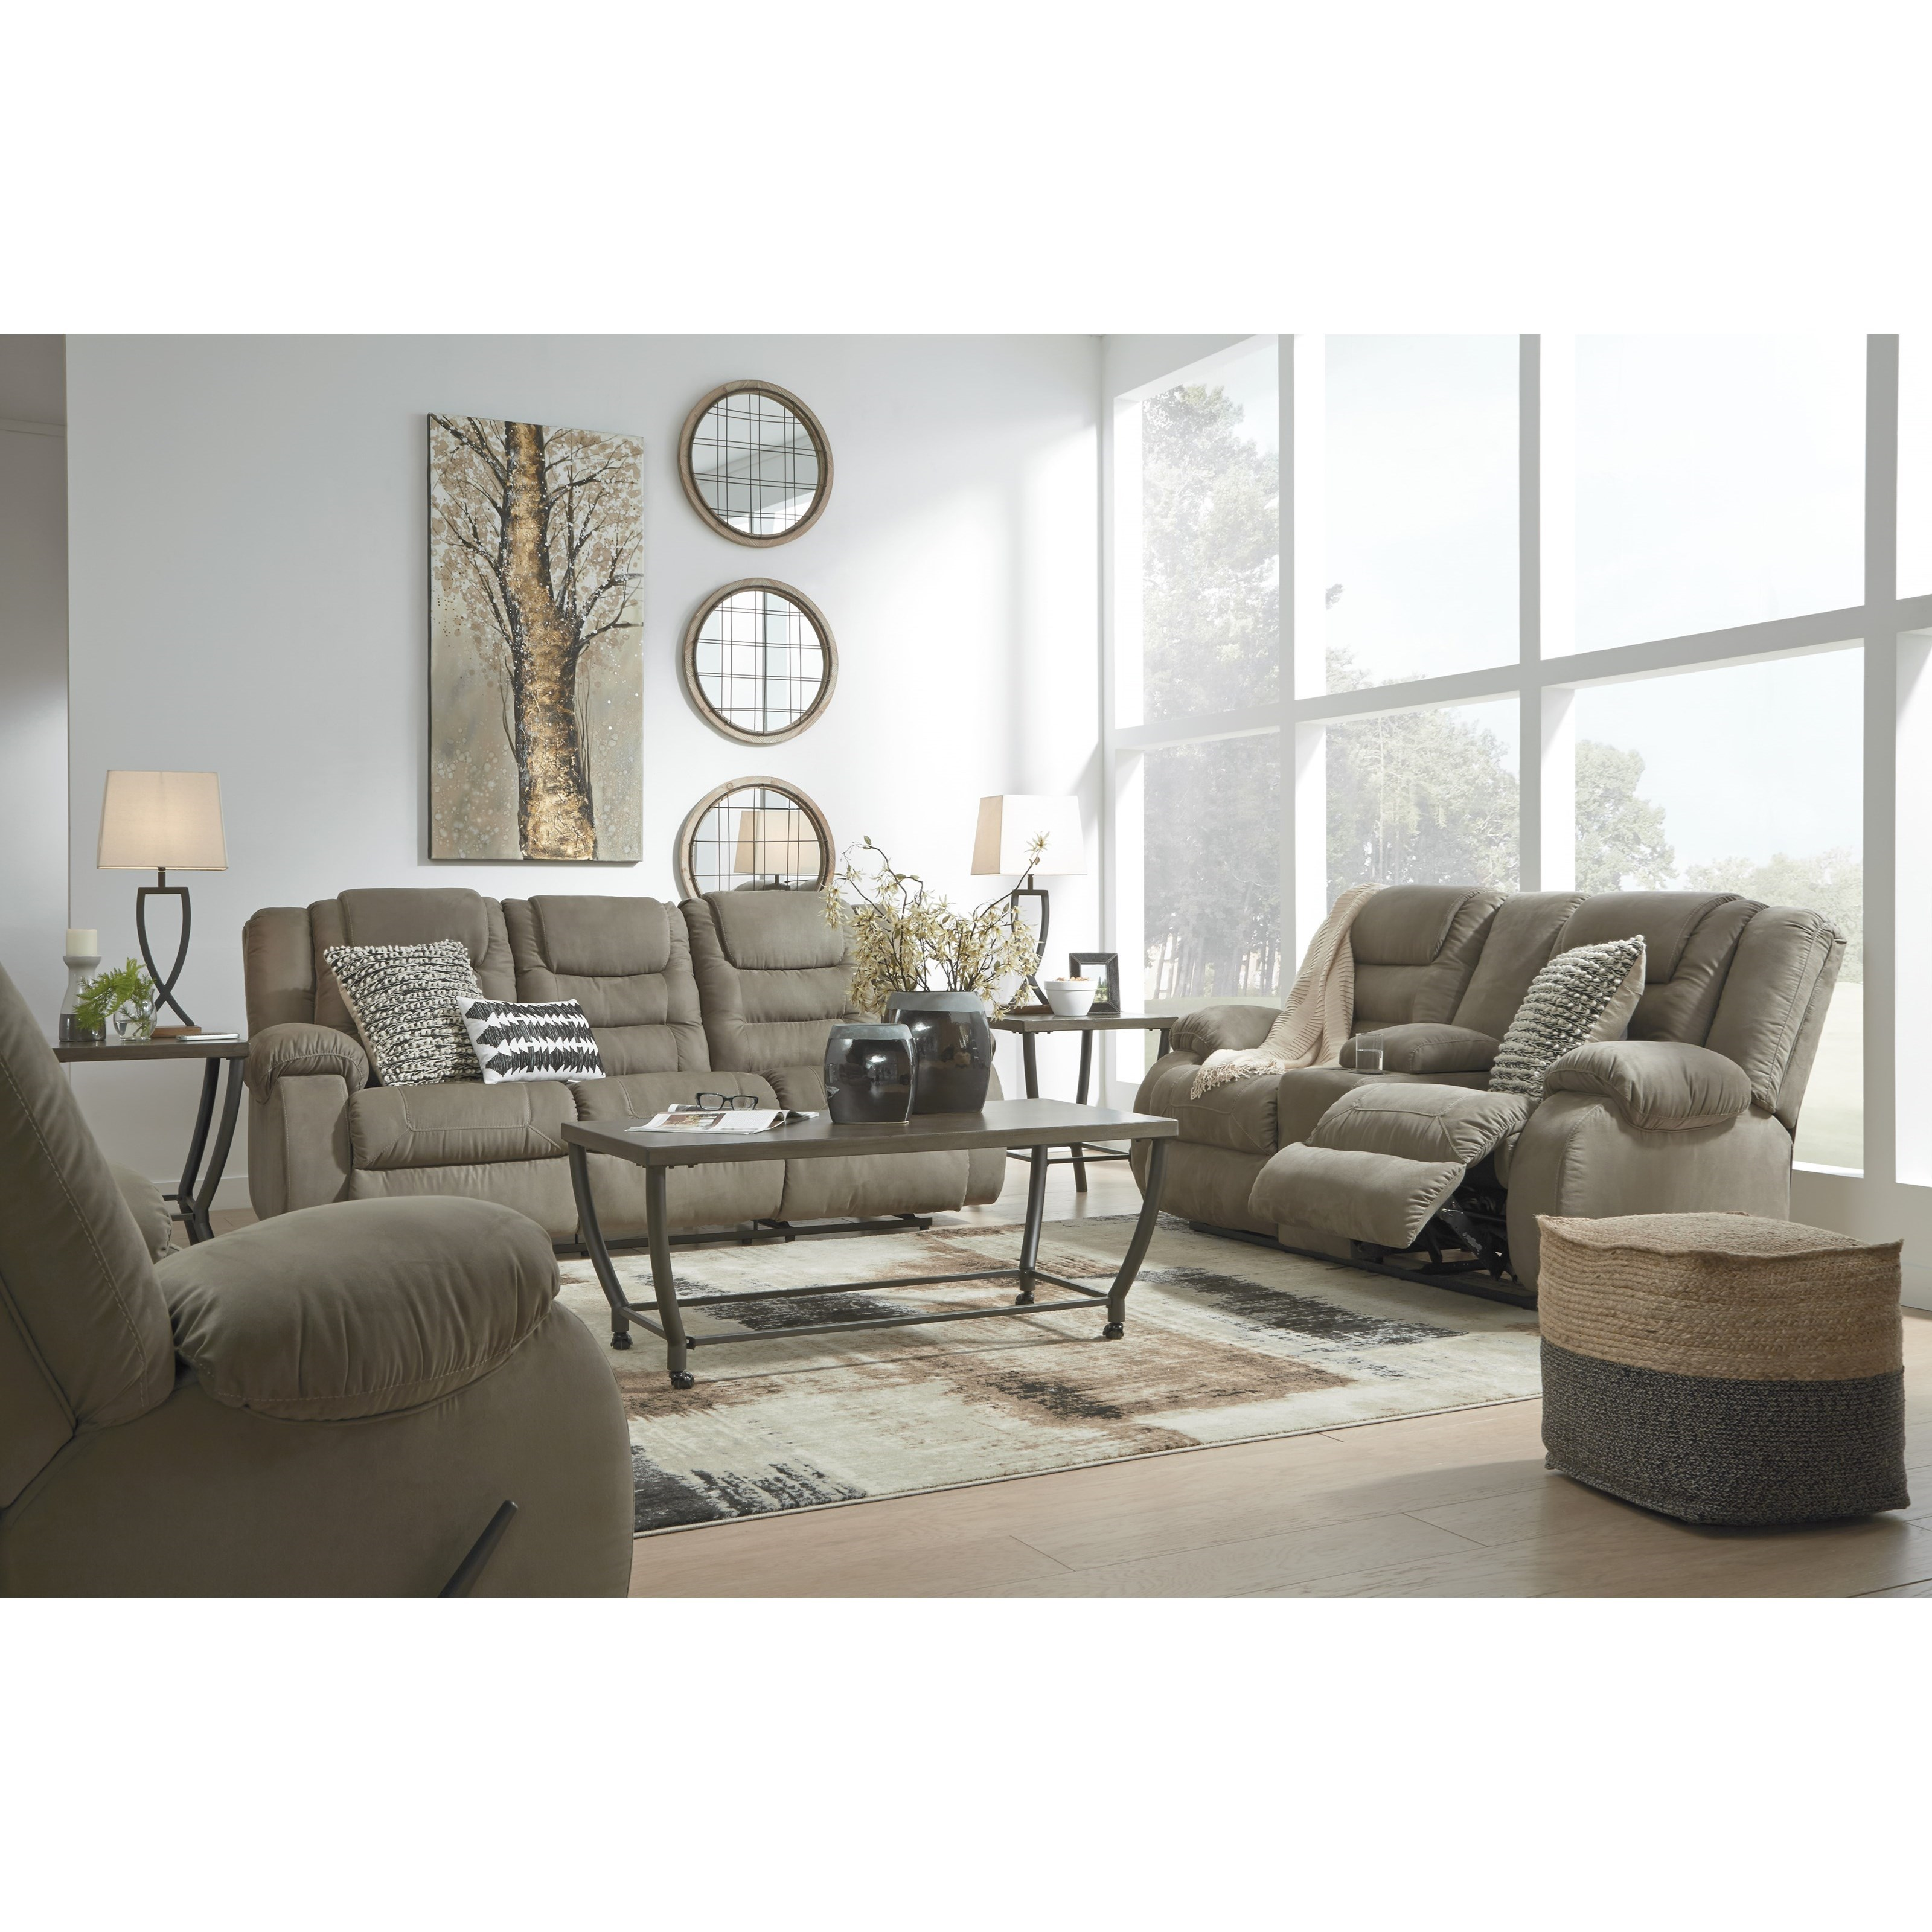 McCade Reclining Living Room Group by Signature Design by Ashley at Northeast Factory Direct